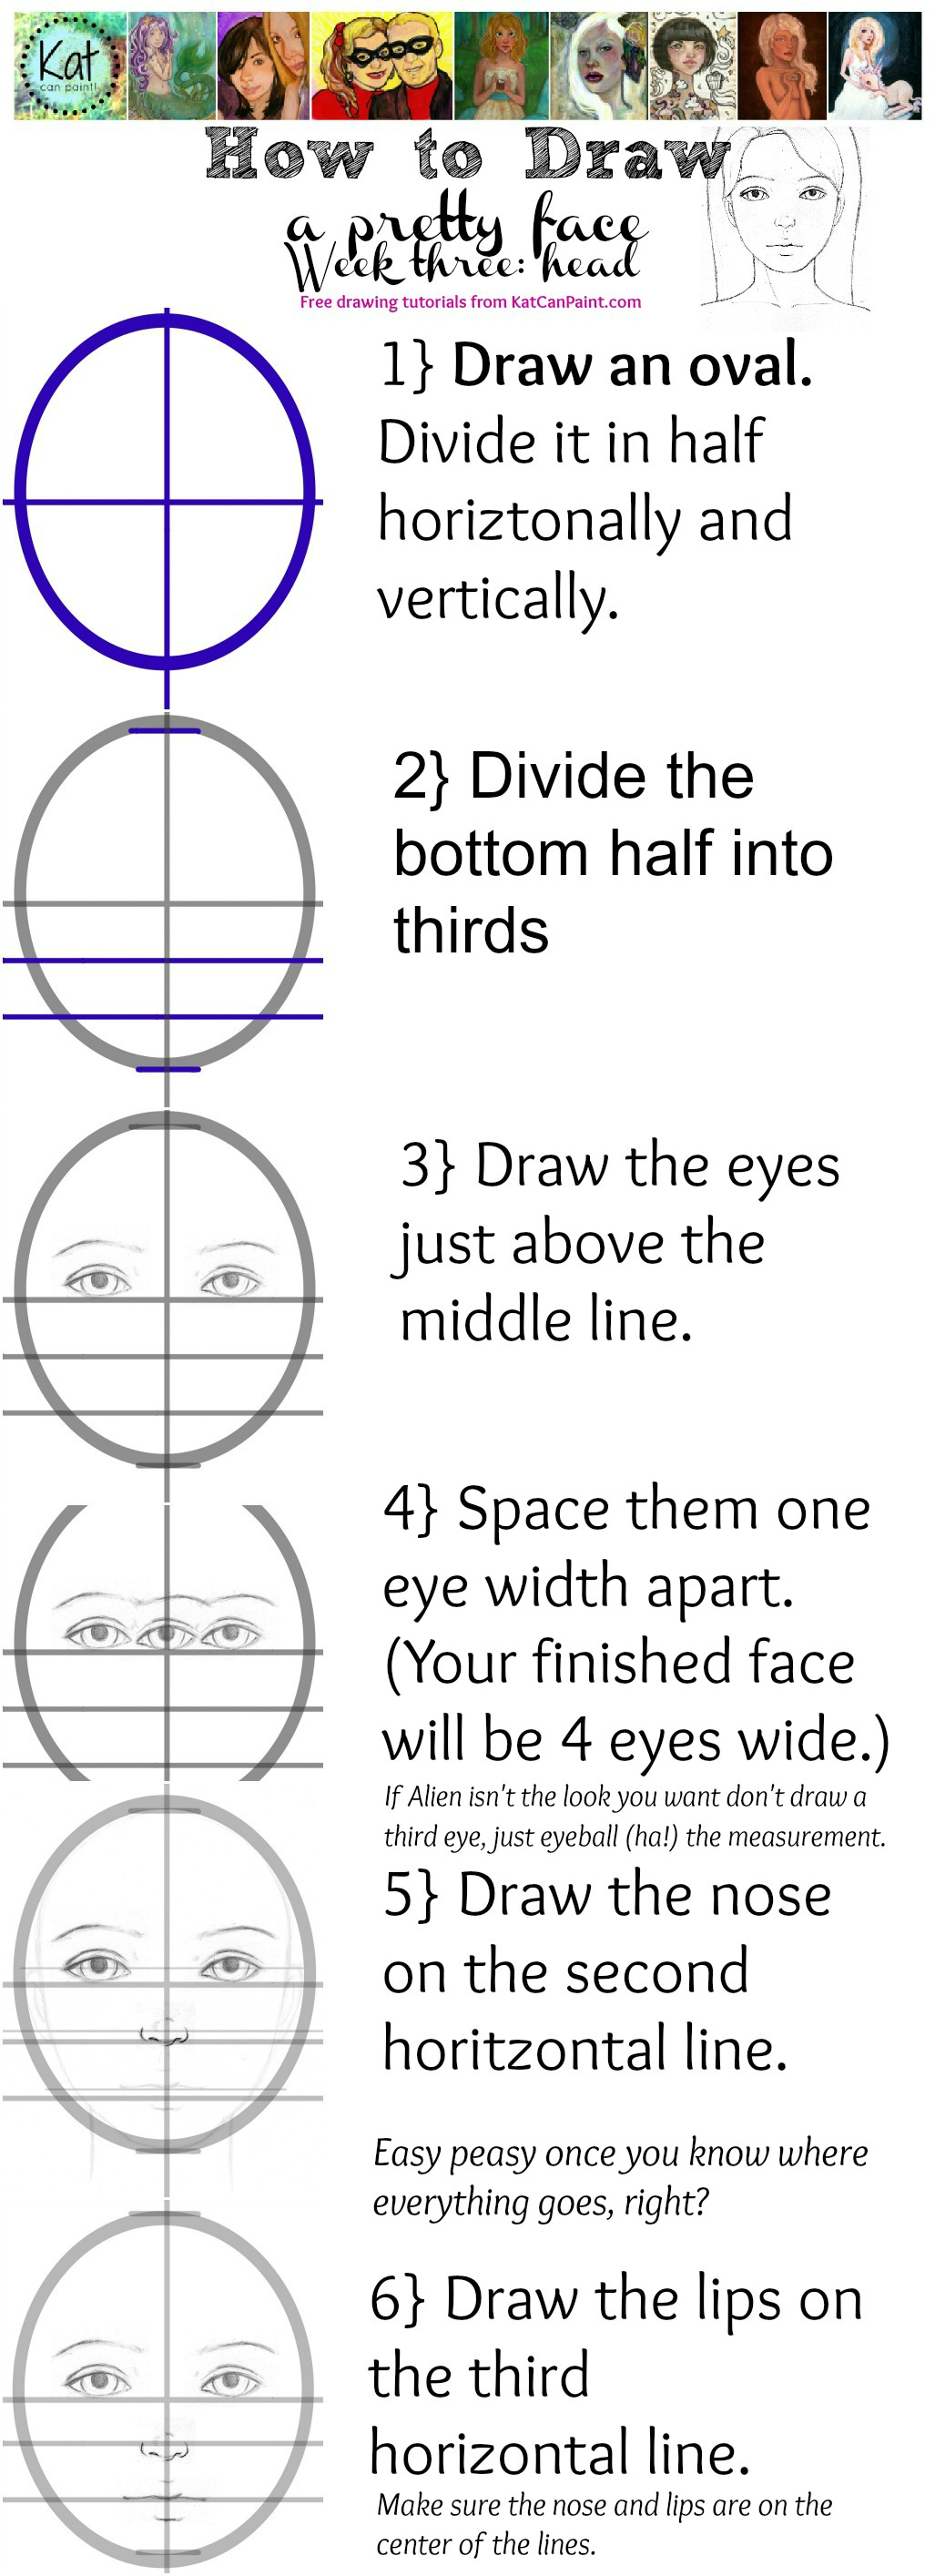 How to Paint a Pretty Face – Kat Can Paint education, free worksheets, worksheets, learning, multiplication, and alphabet worksheets Portrait Drawing Worksheet 1708 x 620